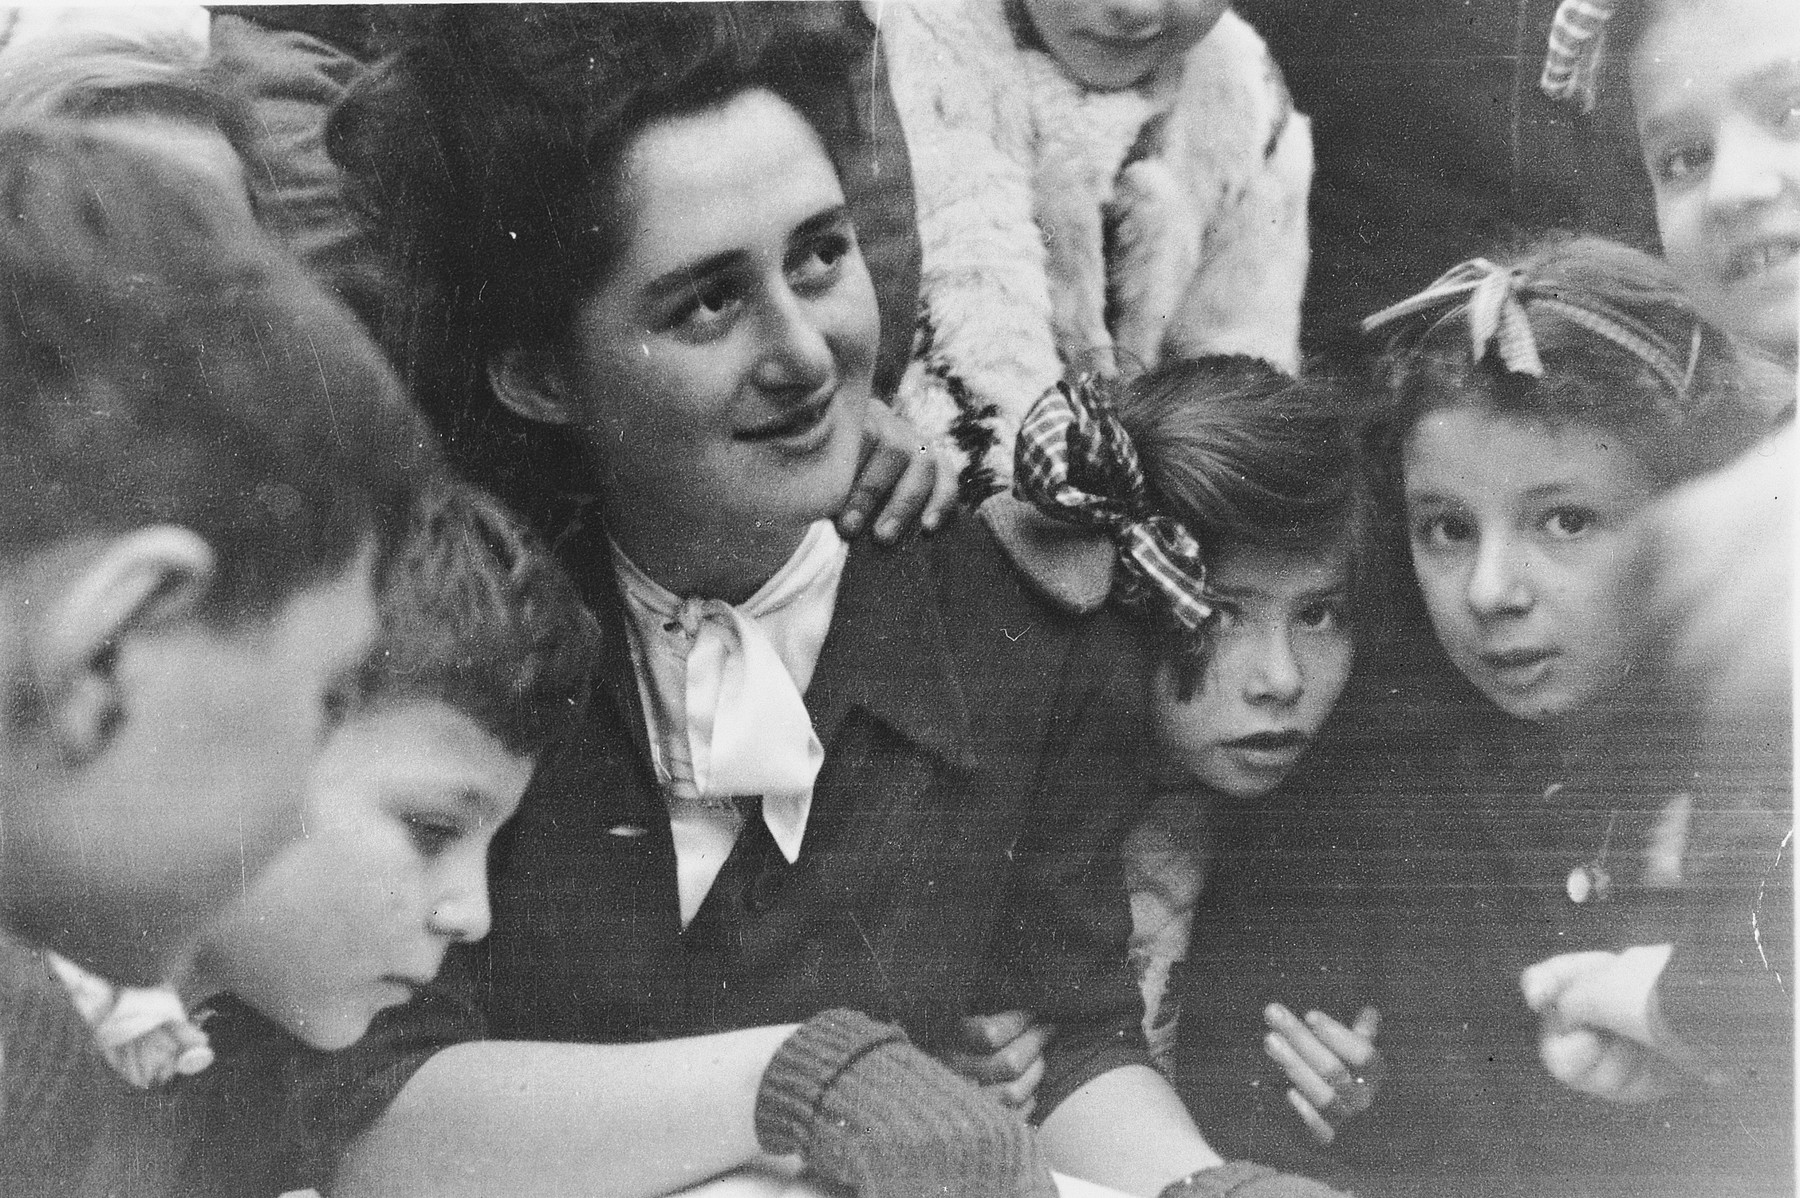 Rita Leisner is surrounded by a group of her students in the Fontenay-aux-Roses children's home.